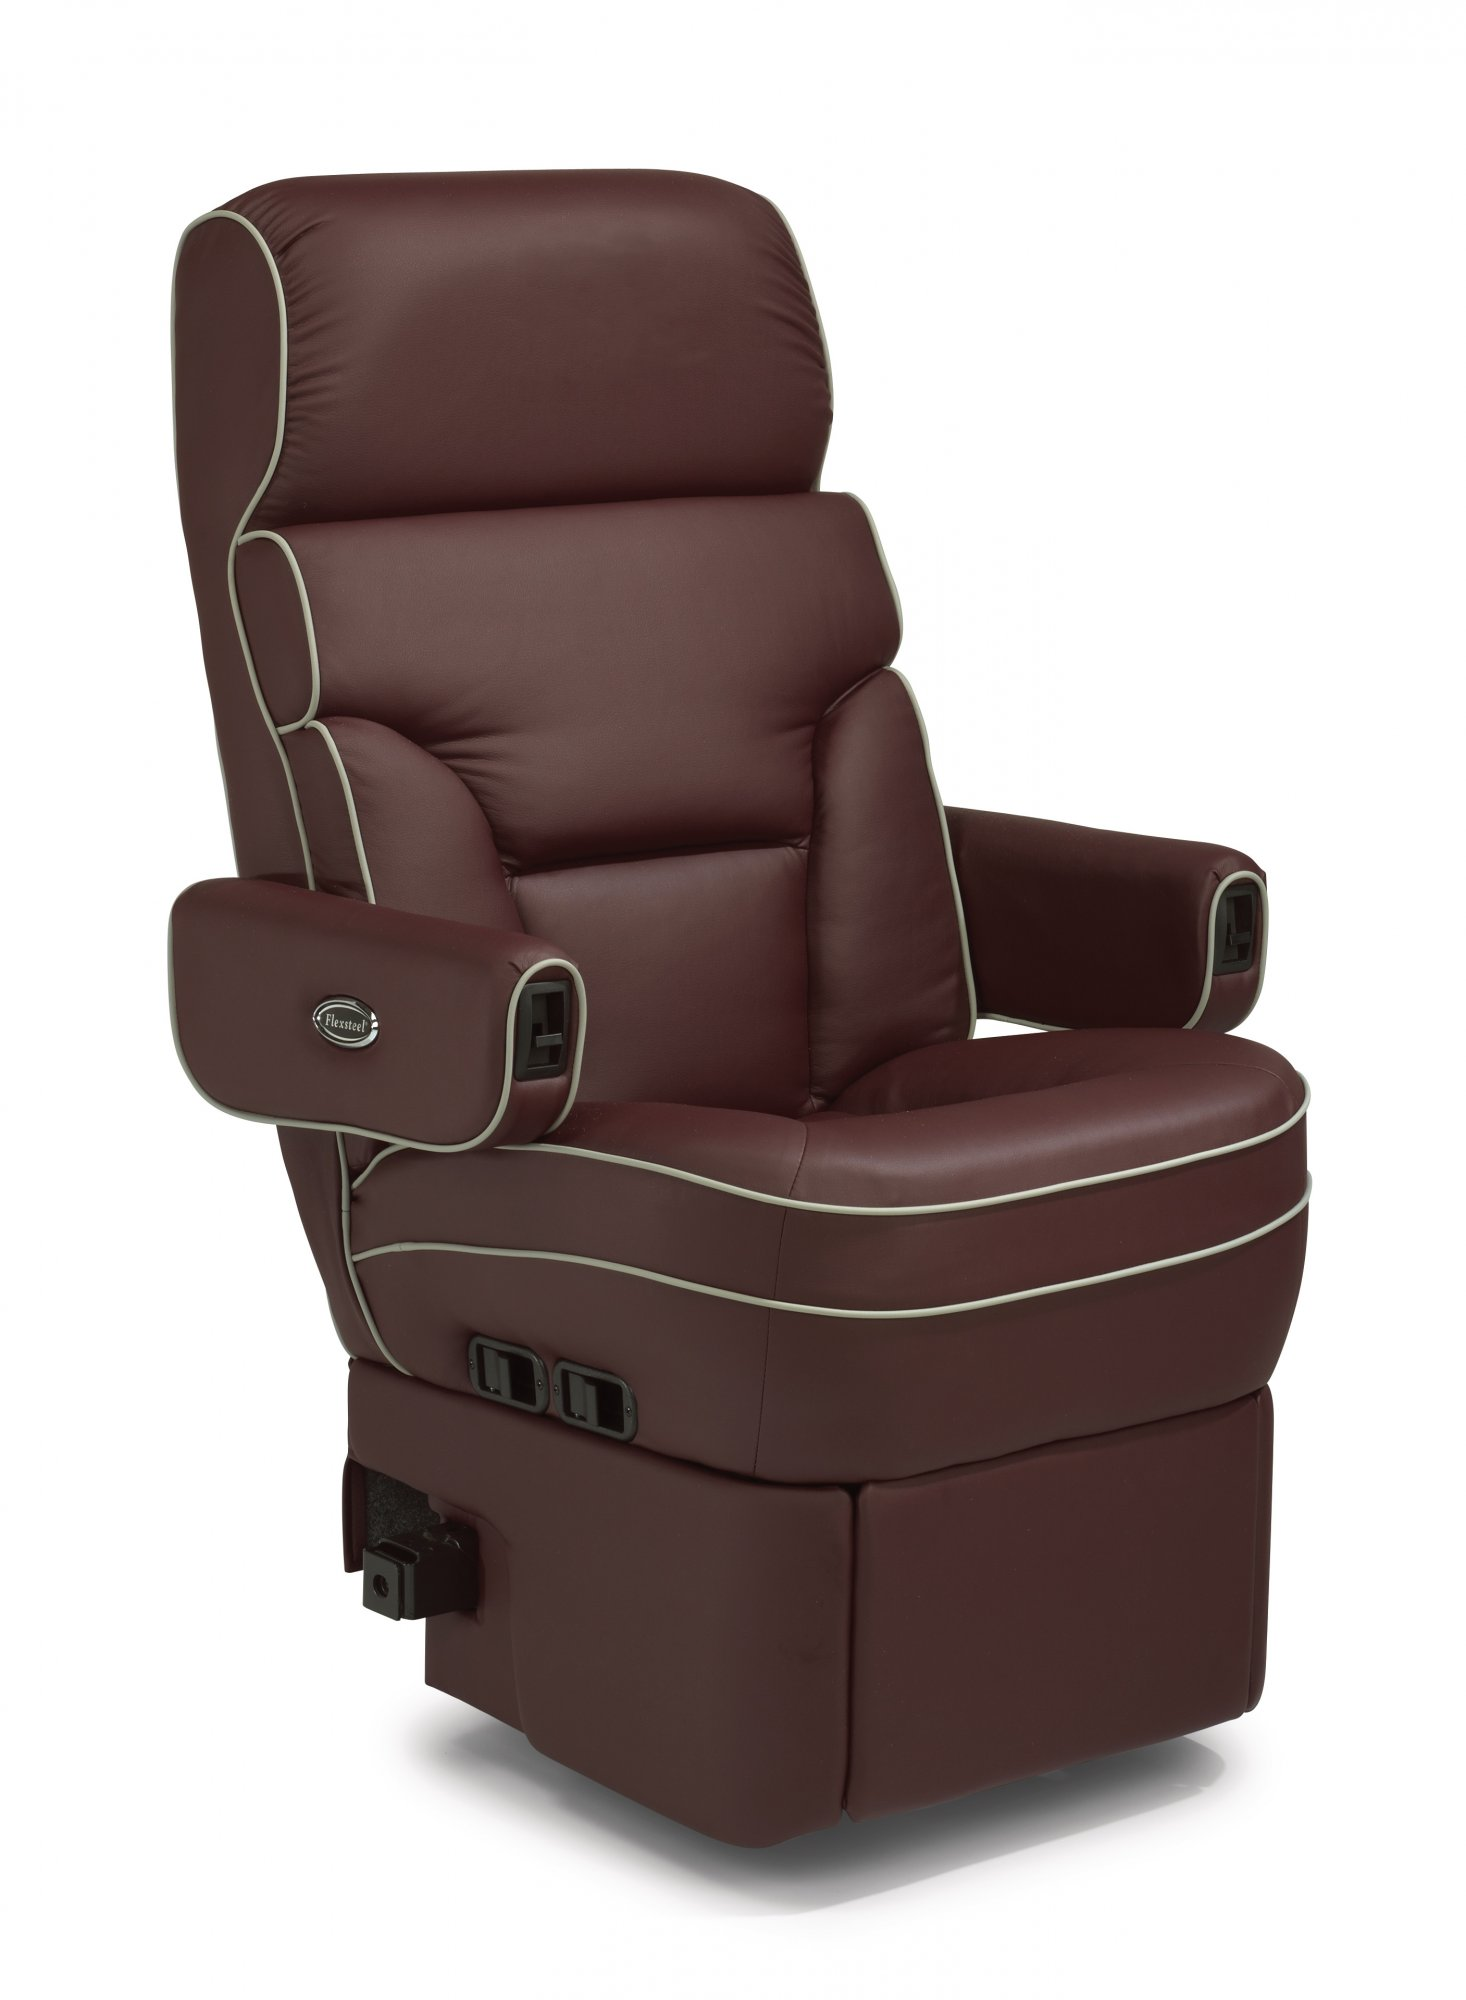 Rv Chair Flexsteel Rv Leather Seat Covers Velcromag